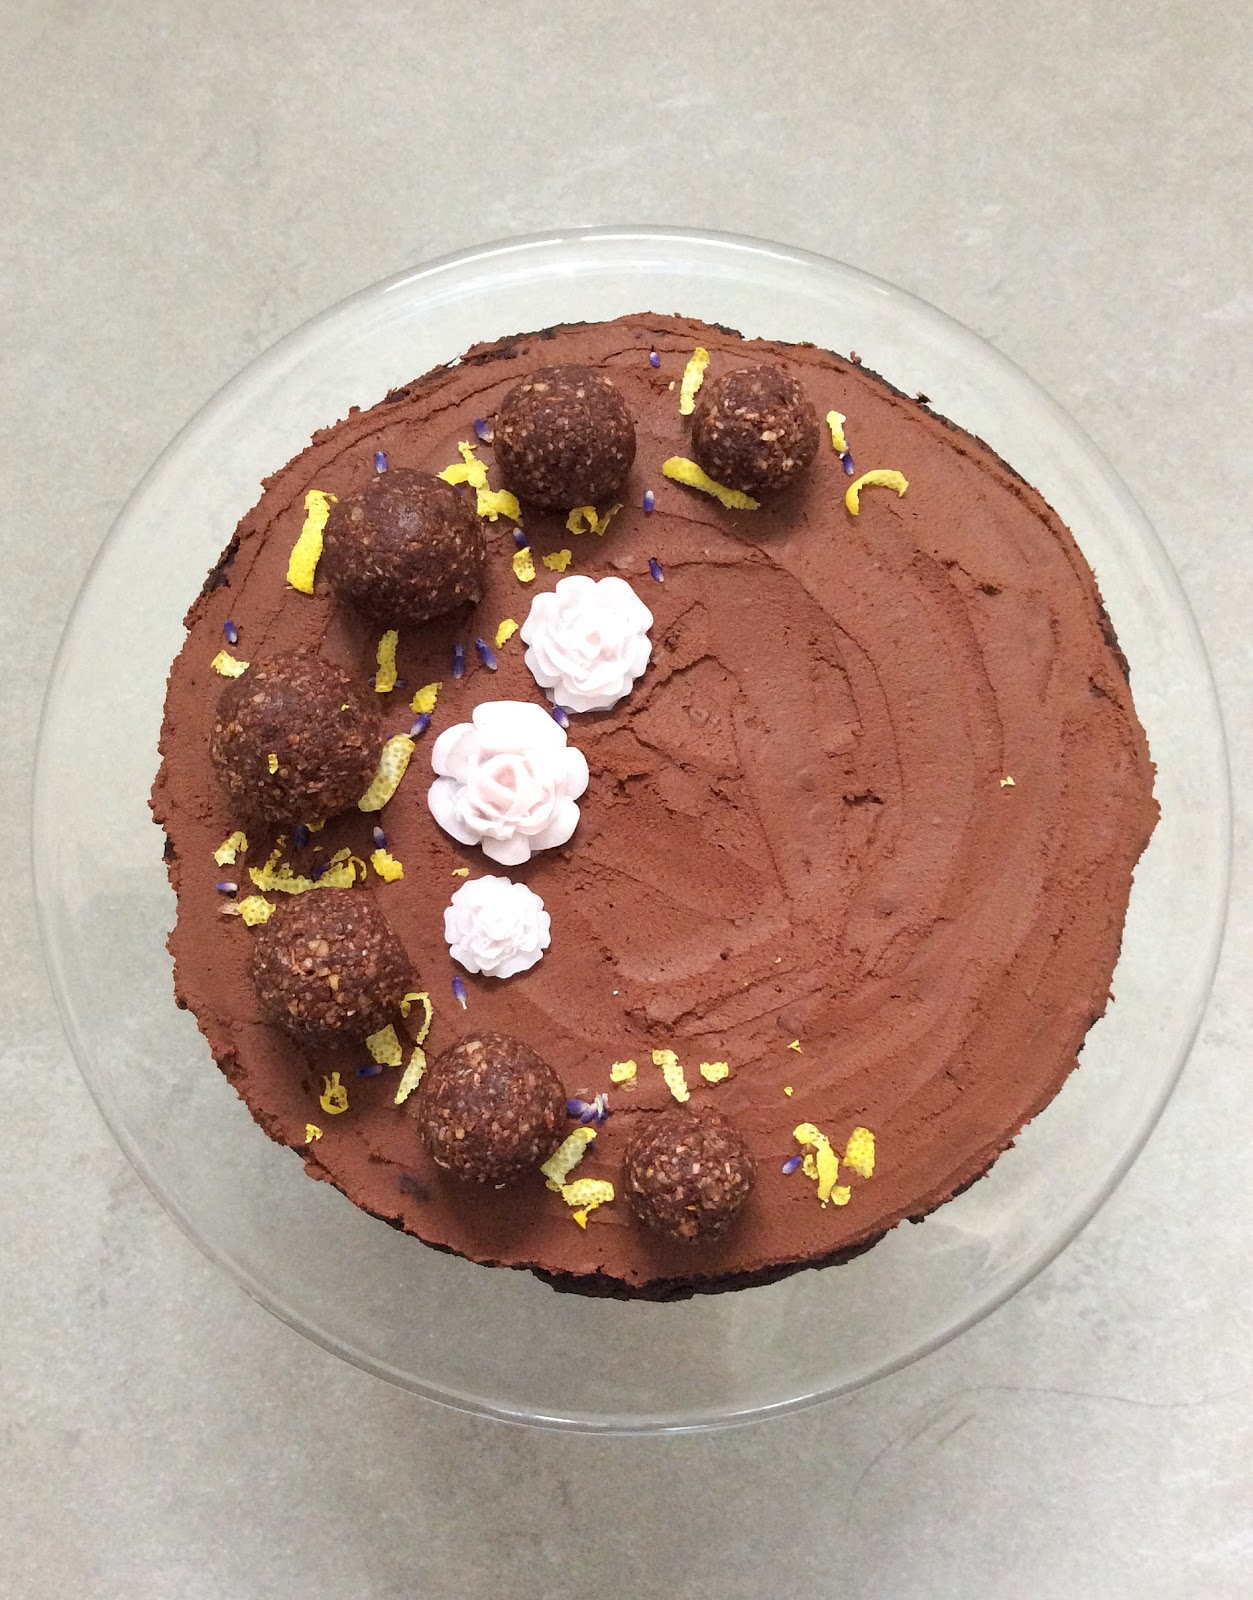 Another Birthday Cake And Simple Chocolate Frosting